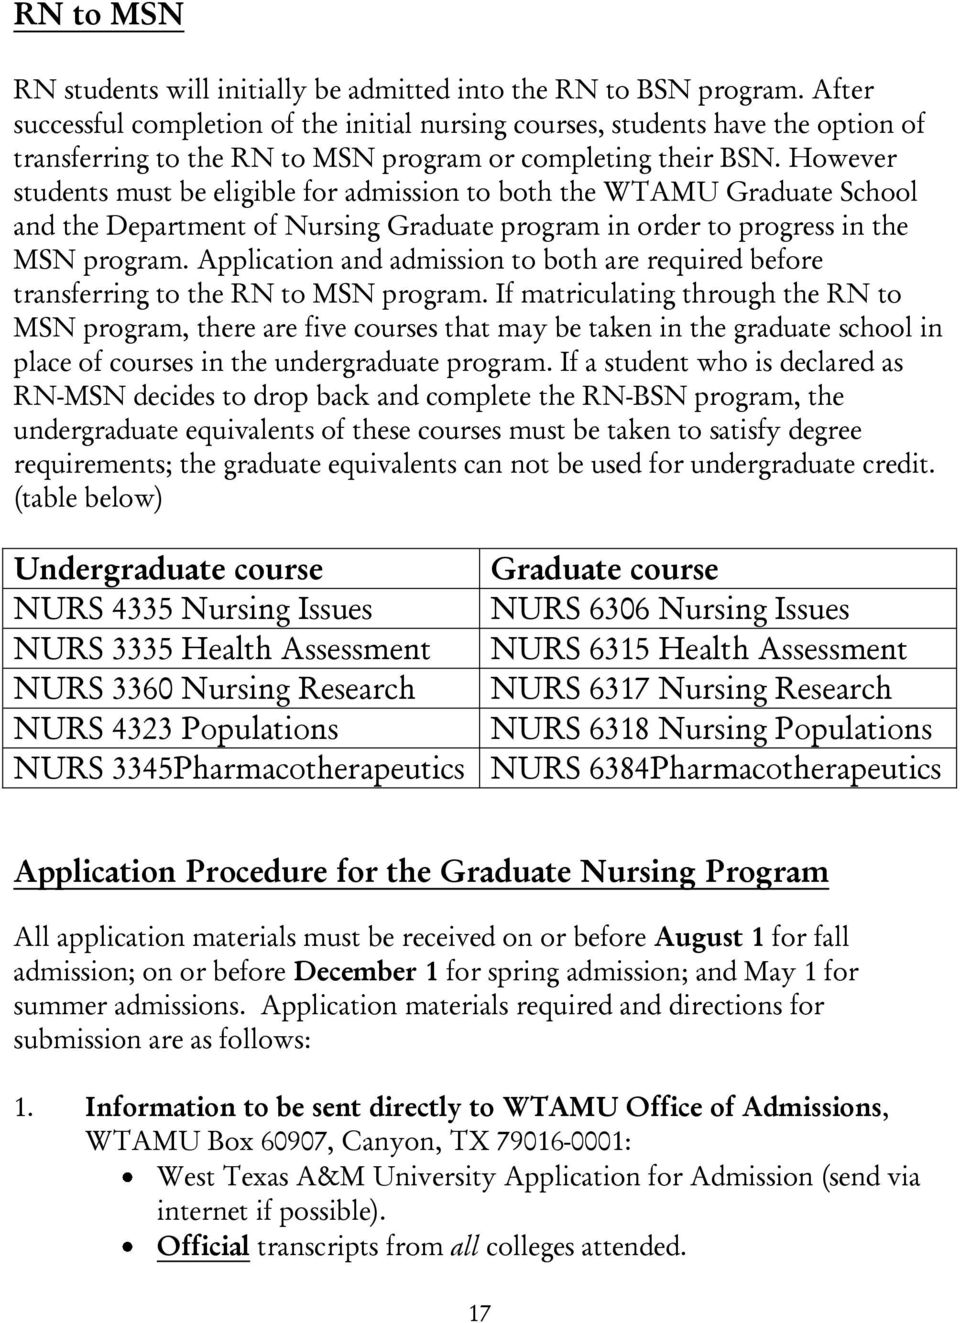 However students must be eligible for admission to both the WTAMU Graduate School and the Department of Nursing Graduate program in order to progress in the MSN program.